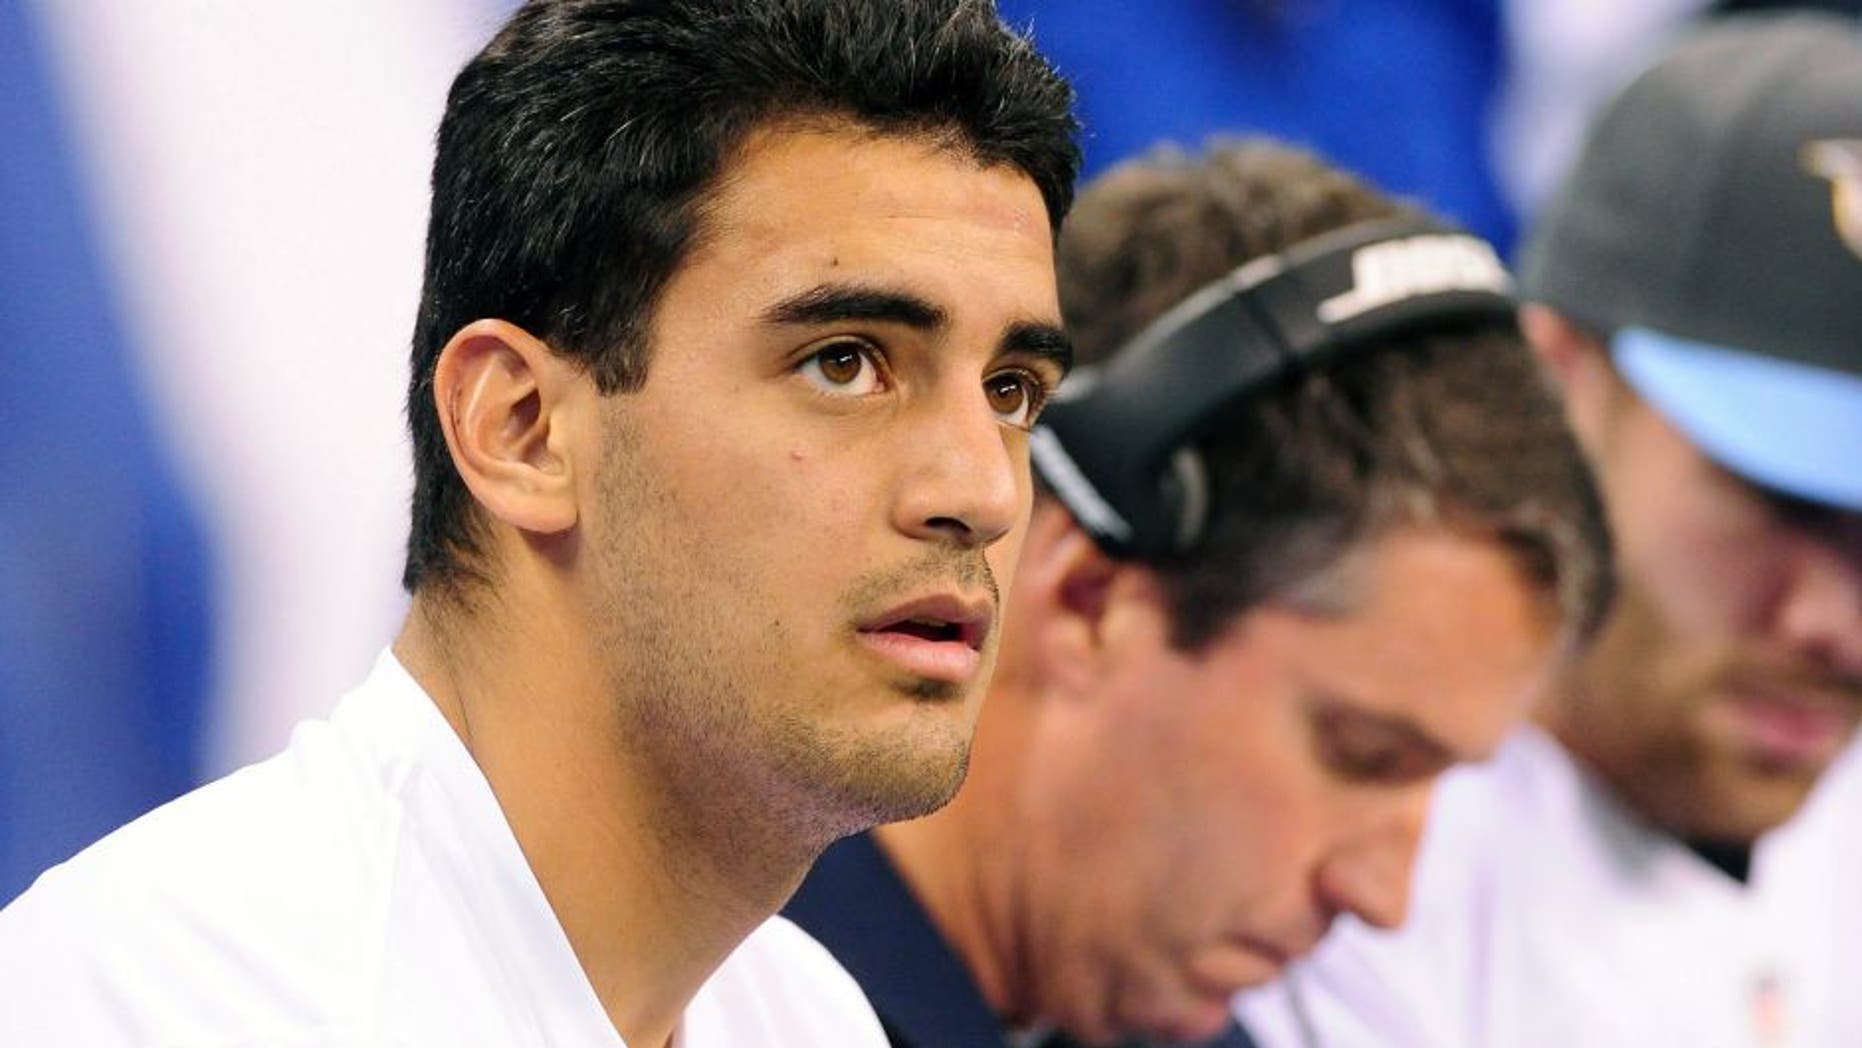 Jan 3, 2016; Indianapolis, IN, USA; Tennessee Titans quarterback Marcus Mariota (8) watches from the sidelines against the Indianapolis Colts at Lucas Oil Stadium. Mandatory Credit: Thomas J. Russo-